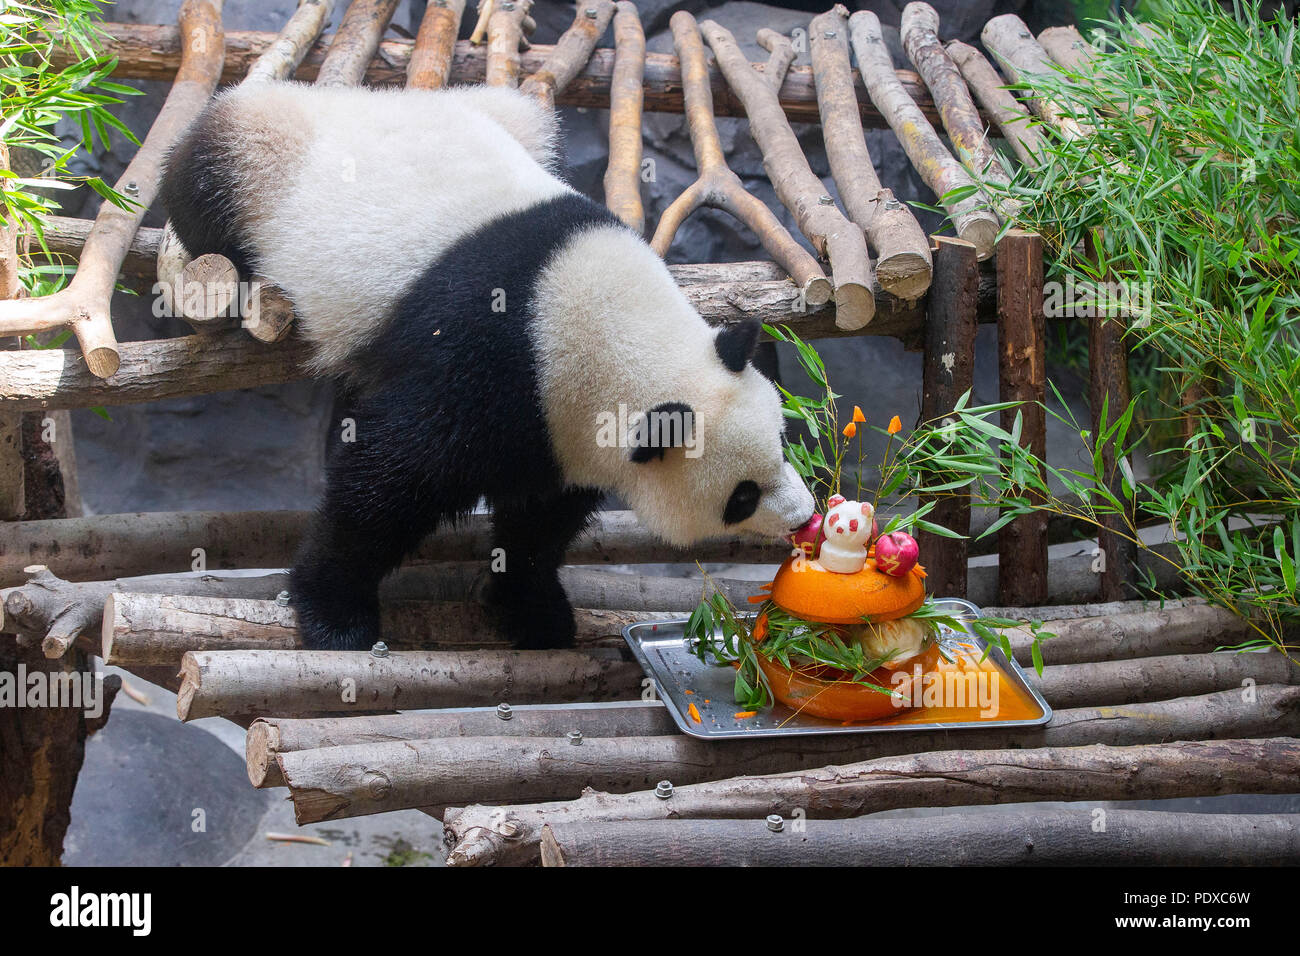 Nanjing, China's Jiangsu Province. 10th Aug, 2018. A giant panda twin eats birthday cake in an air-conditioned room at the Nanjing Hongshan Forest Zoo in Nanjing, capital of east China's Jiangsu Province, Aug. 10, 2018. Staff workers at the zoo celebrated the 3rd birthday anniversary for the female giant panda twins 'Hehe' and 'Jiujiu' on Friday. Credit: Su Yang/Xinhua/Alamy Live News - Stock Image